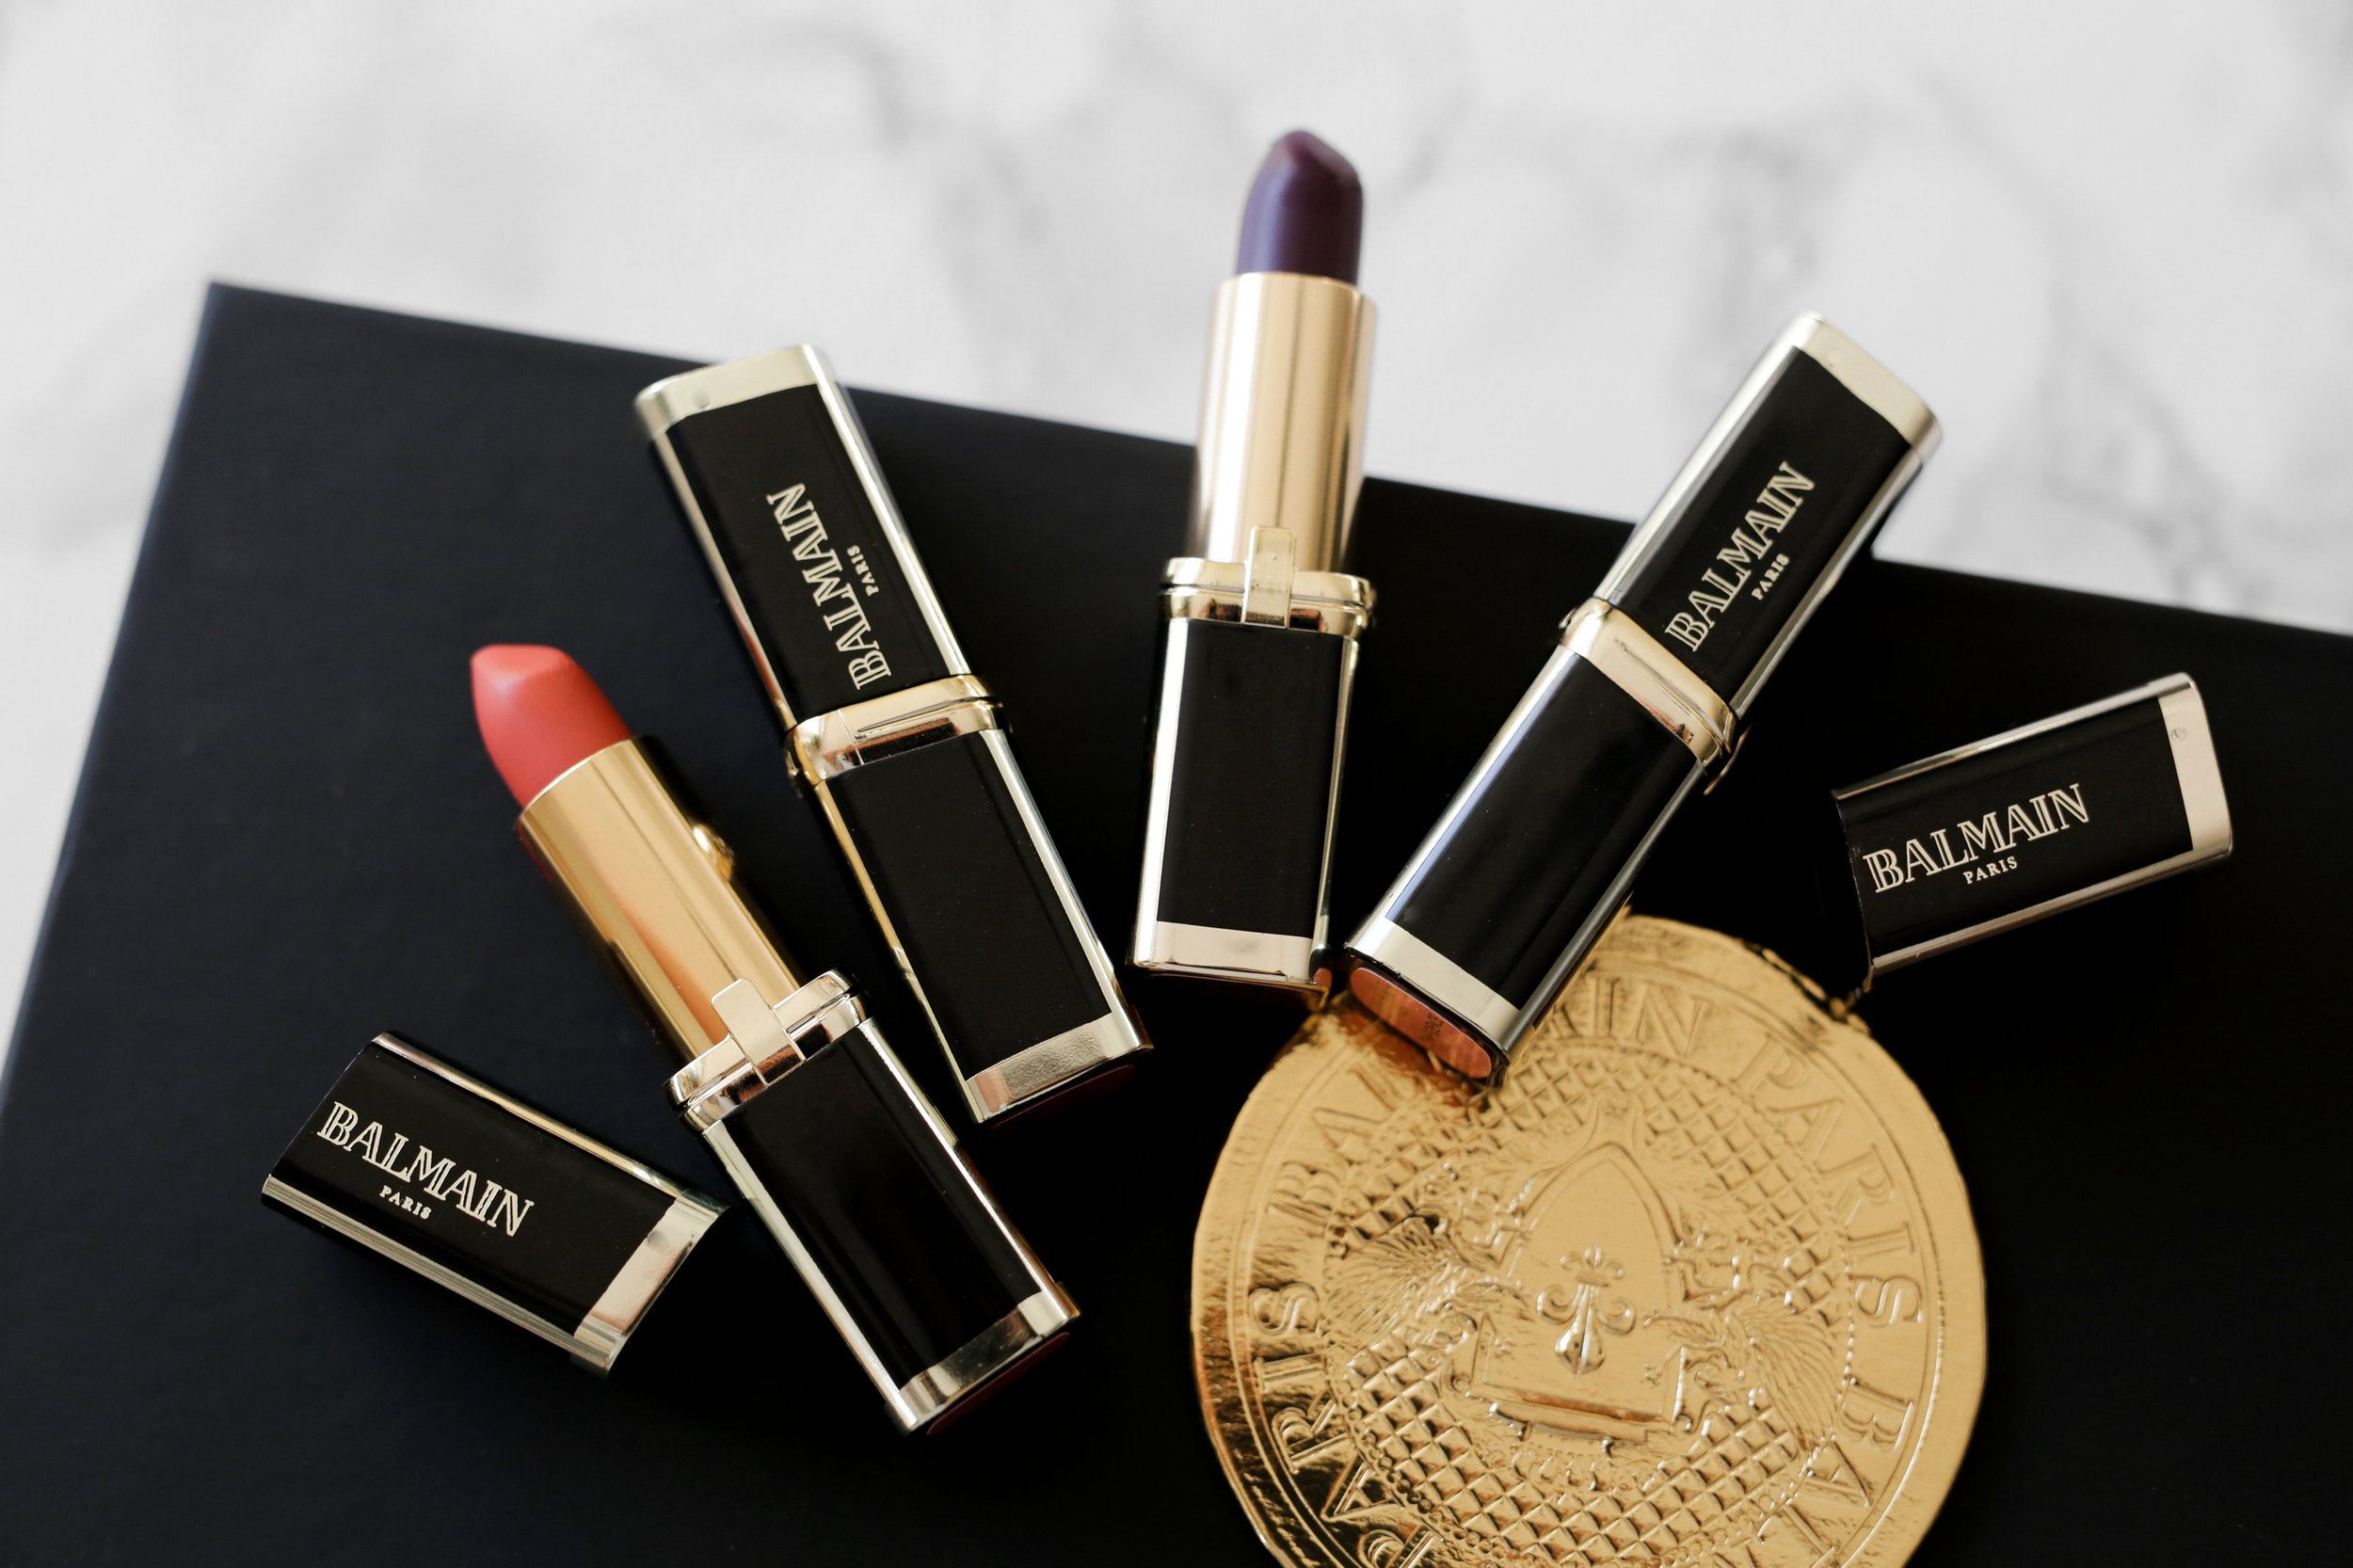 L'Oreal X Balmain Couture LIPSTICK collection - Confidence, Liberation, Domination, Confession Swatches-2085.JPG